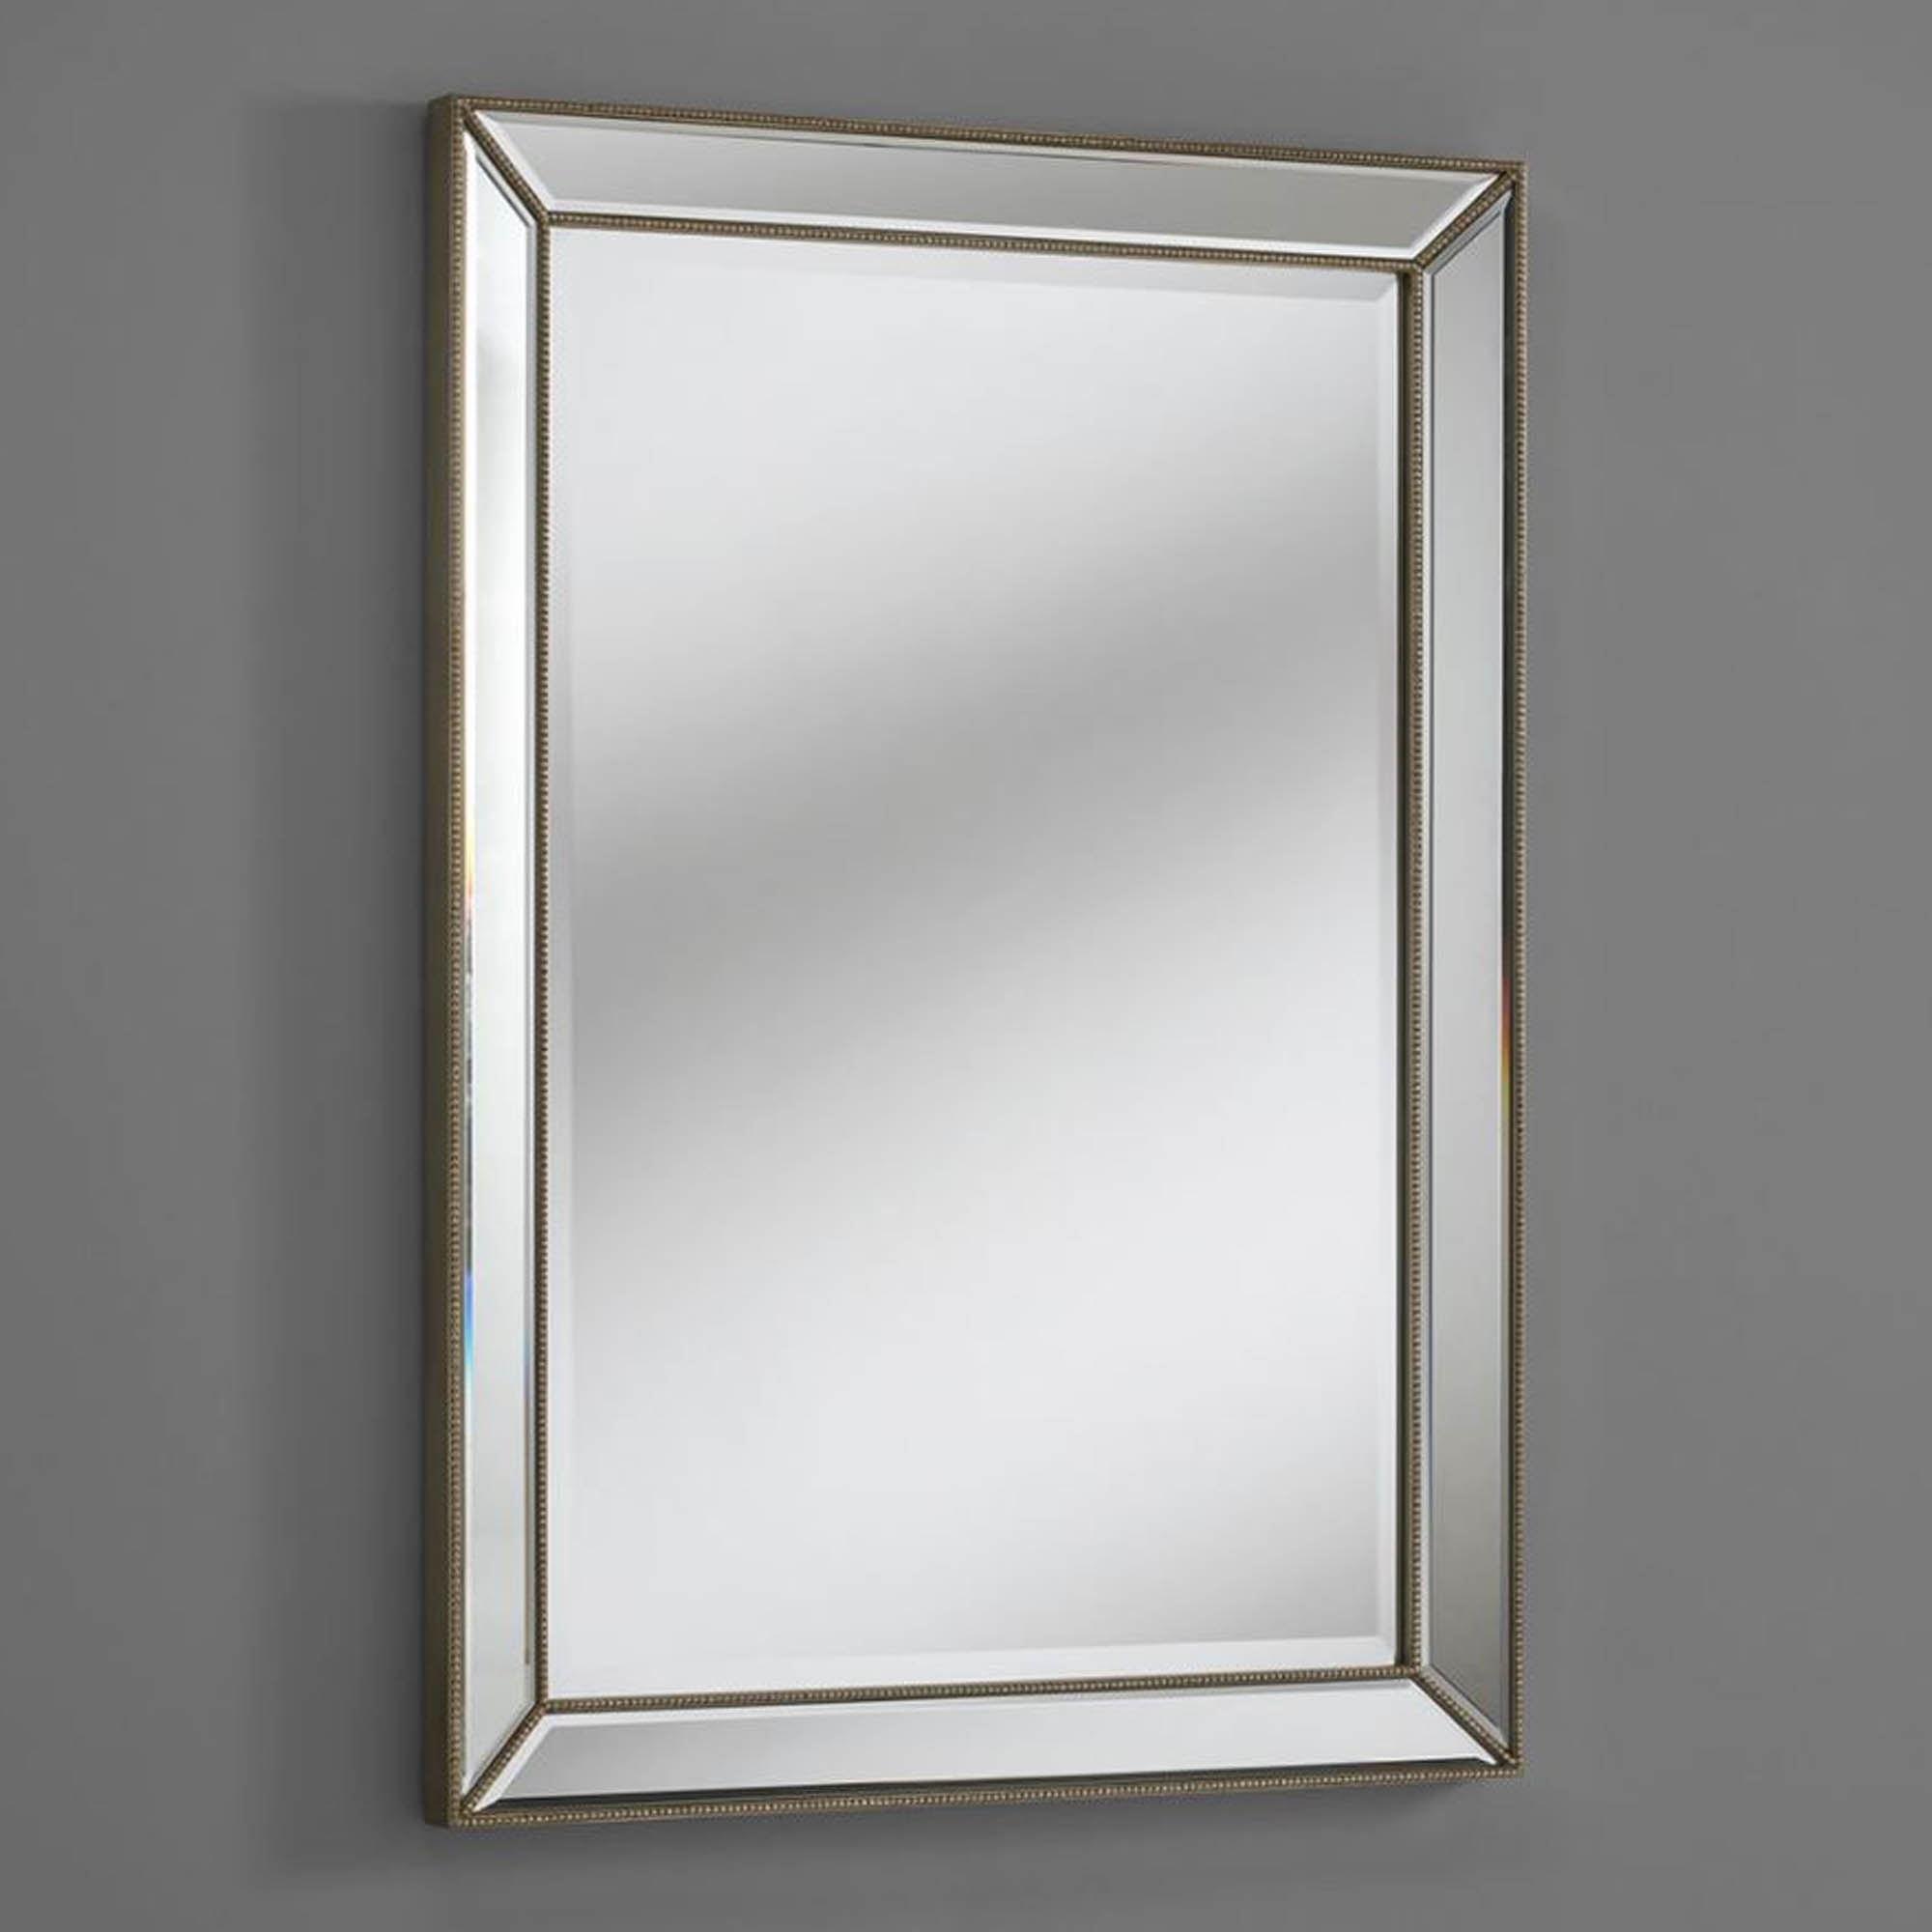 Venetian Style Wall Mirrors With Regard To Popular Silver Venetian Rectangular Wall Mirror (View 19 of 20)